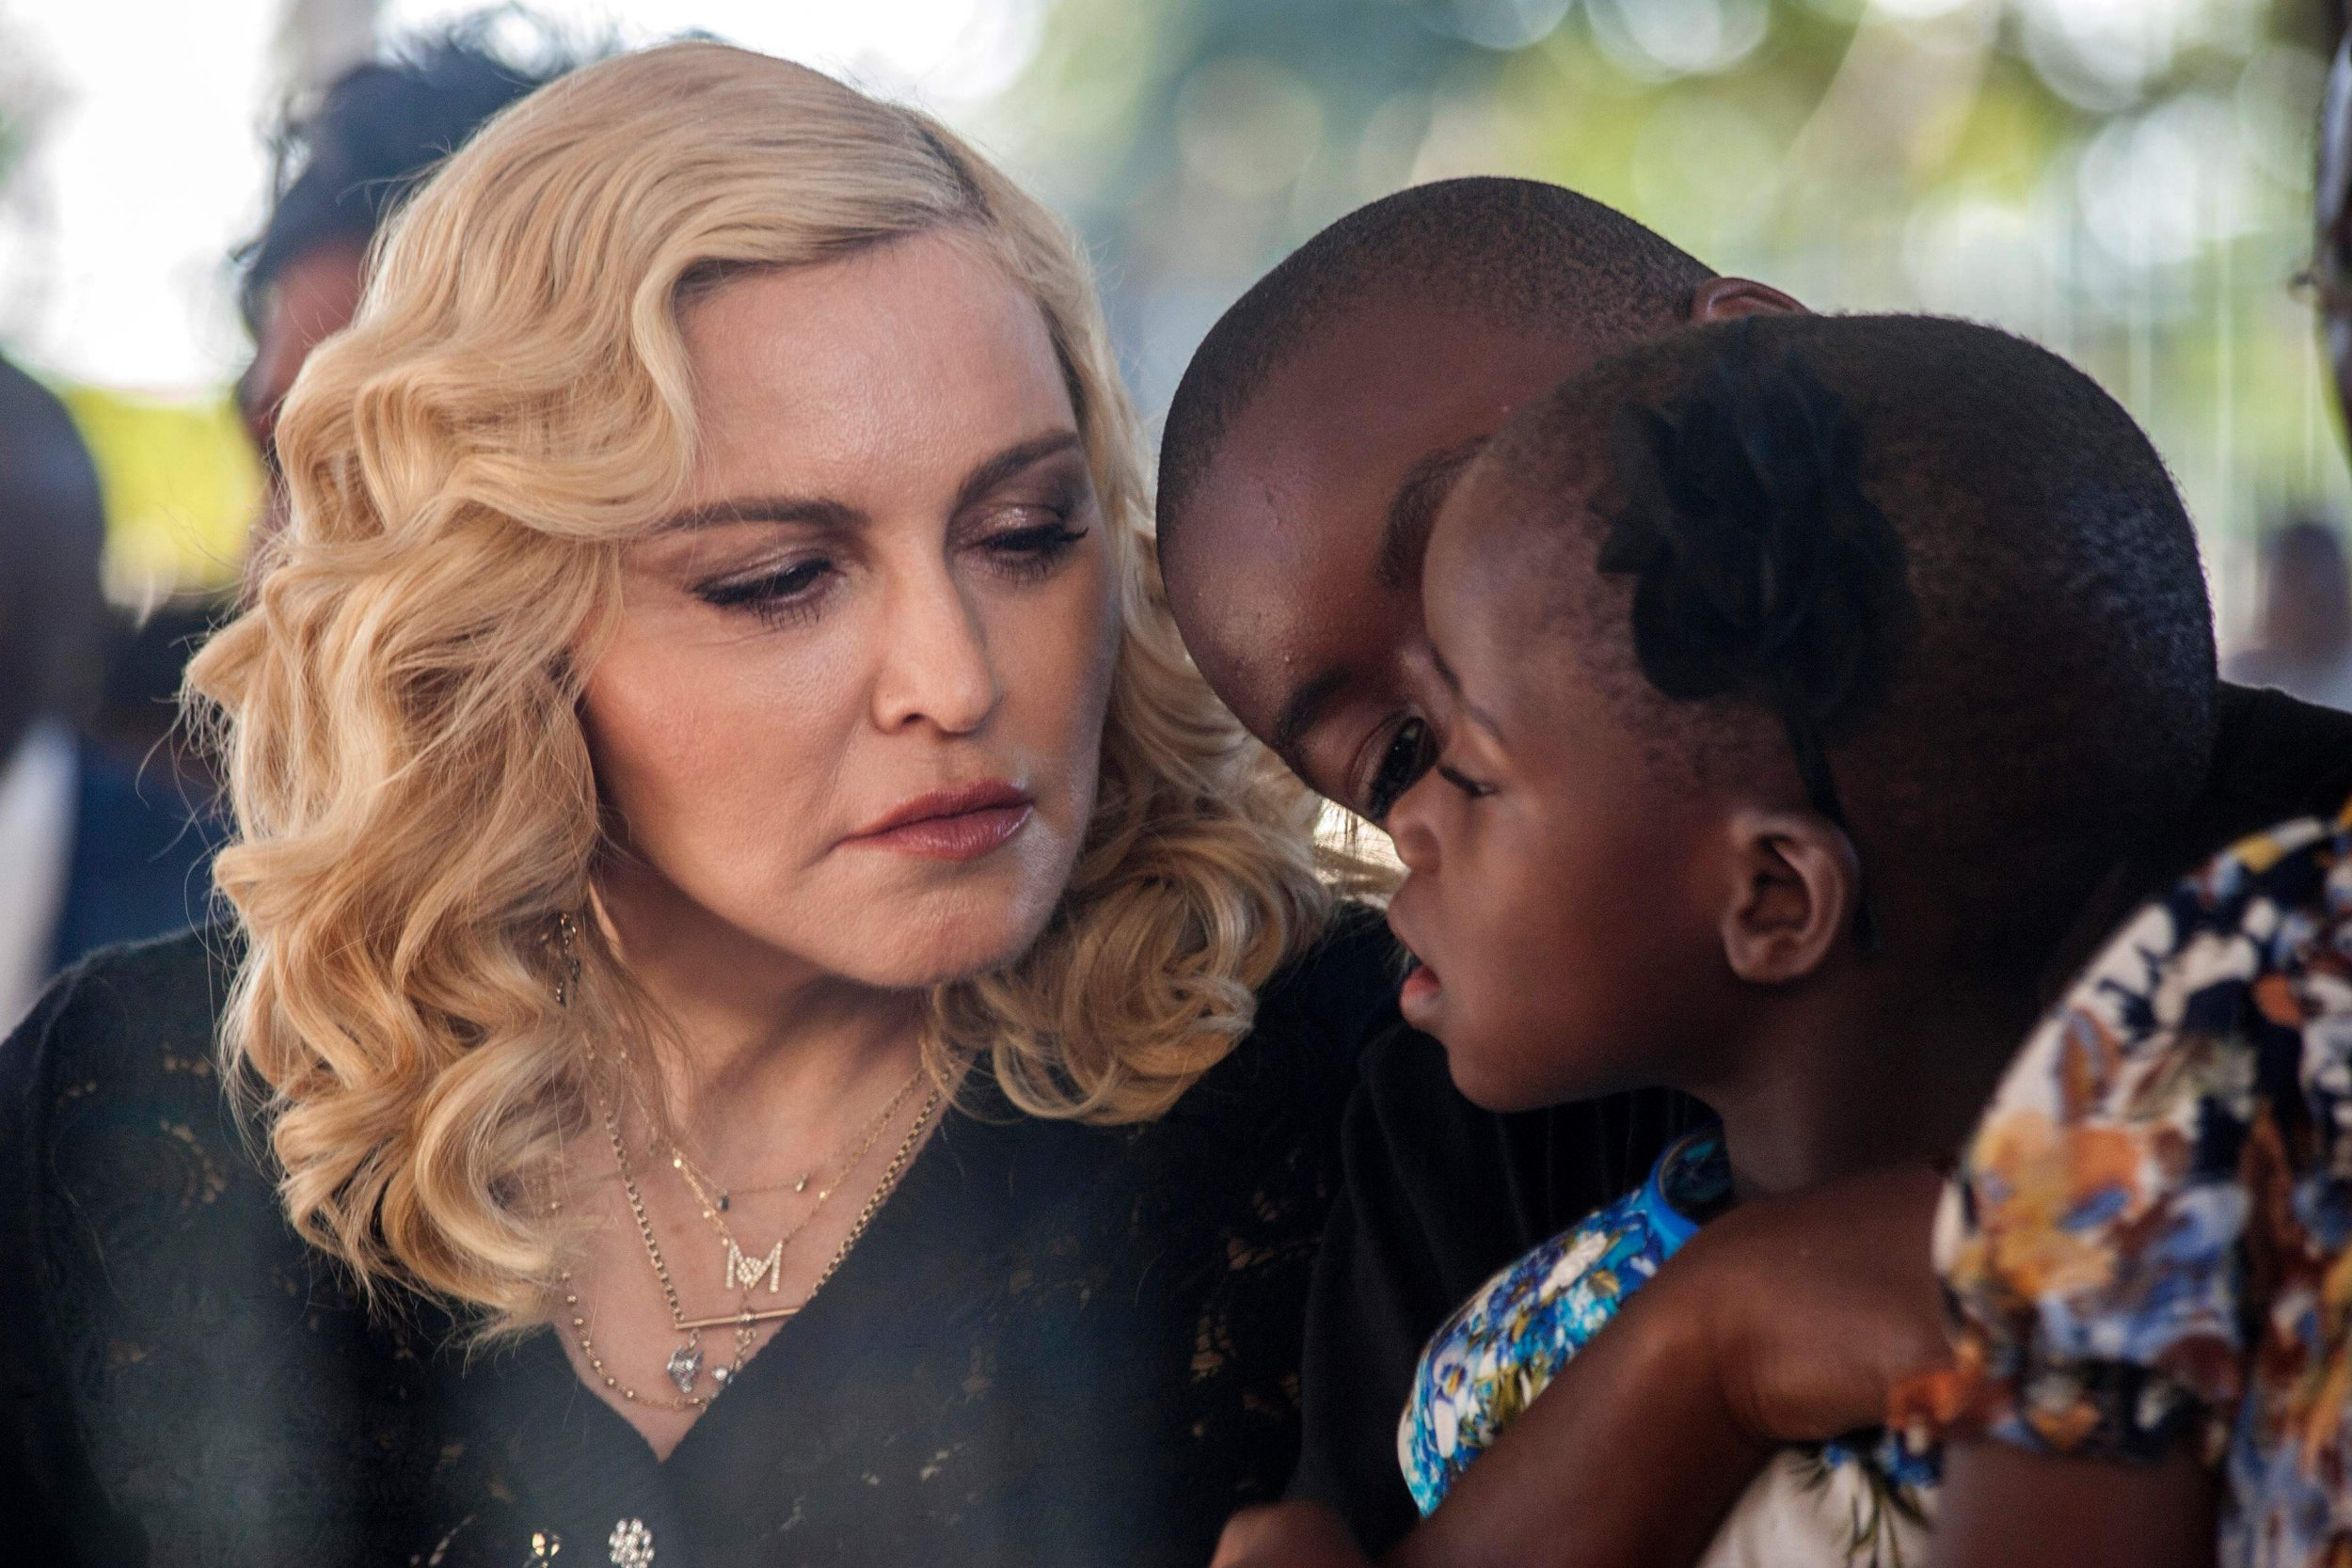 Madonna was told she 'wasn't fit to raise children' when trying to adopt in Malawi